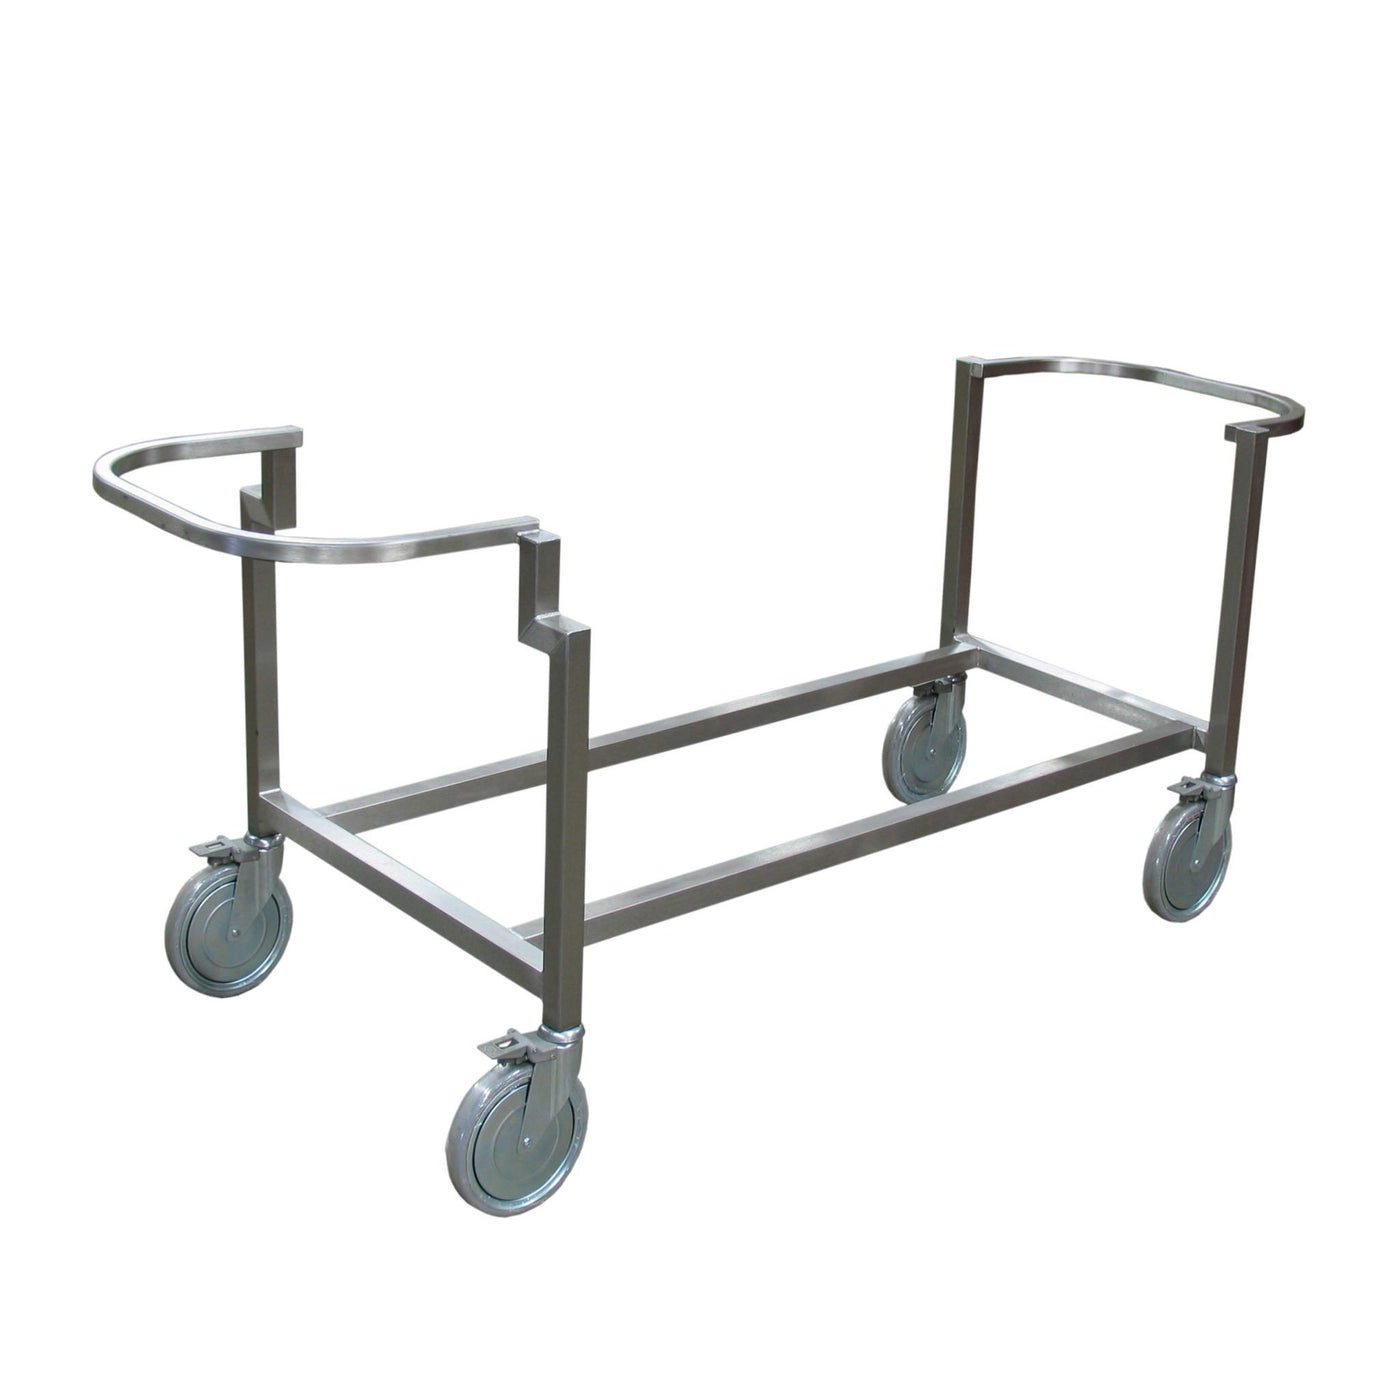 C-Arm Accessible Autopsy Carrier-Body Transporter-Mortech Manufacturing Company Inc. Quality Stainless Steel Autopsy, Morgue, Funeral Home, Necropsy, Veterinary / Anatomy, Dissection Equipment and Accessories